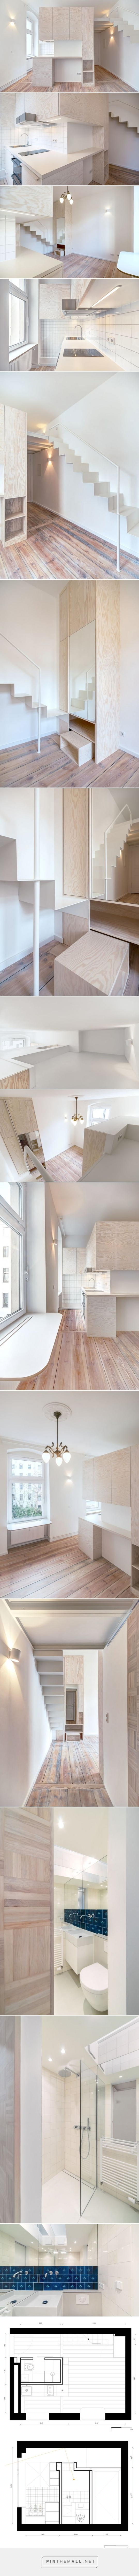 Micro-Apartment: 21 square-meters flat renovated in Berlin - created via http://pinthemall.net